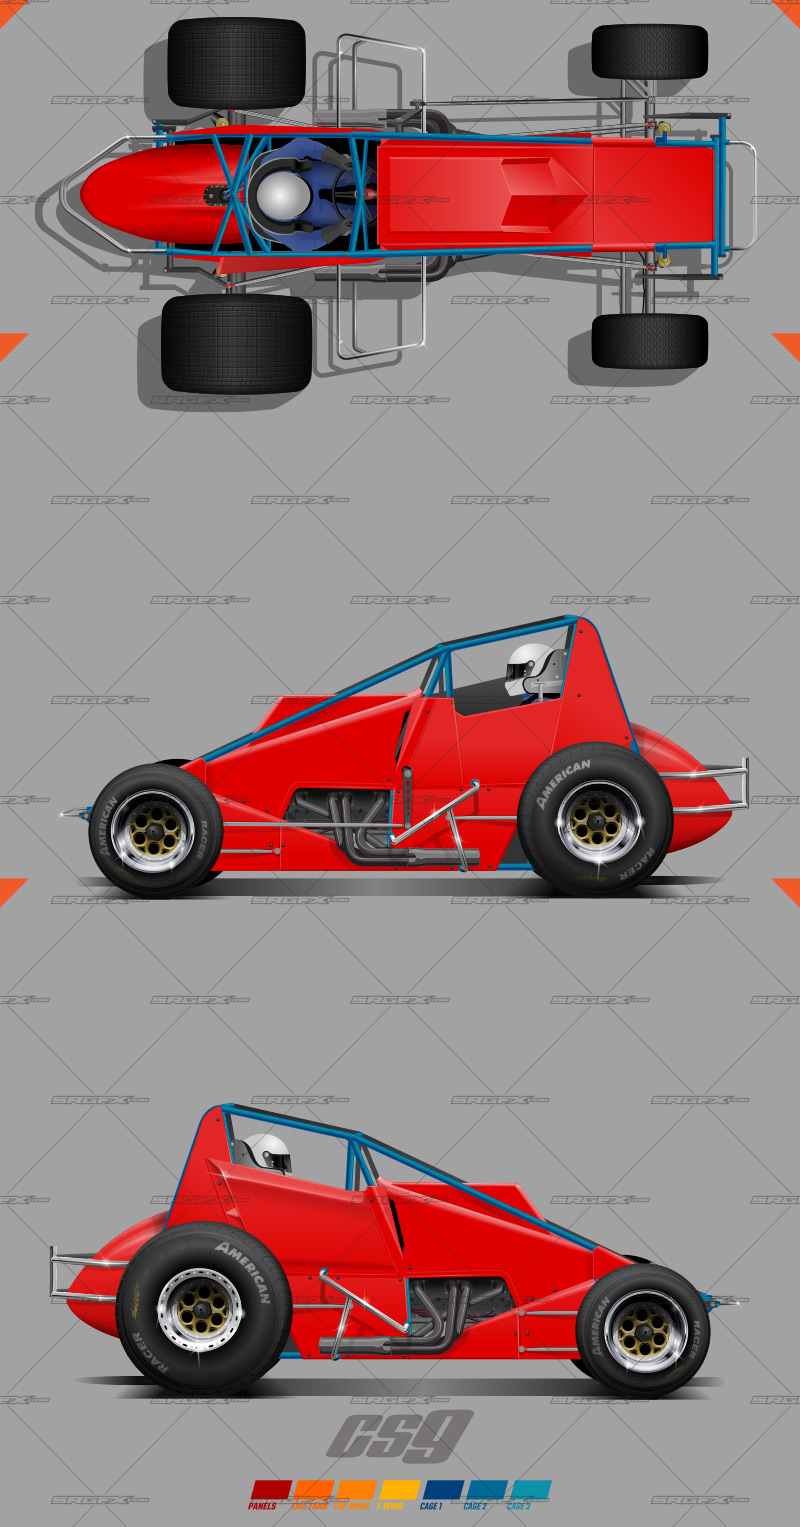 Cs9 sprint car template school of racing graphics for Race car graphic design templates